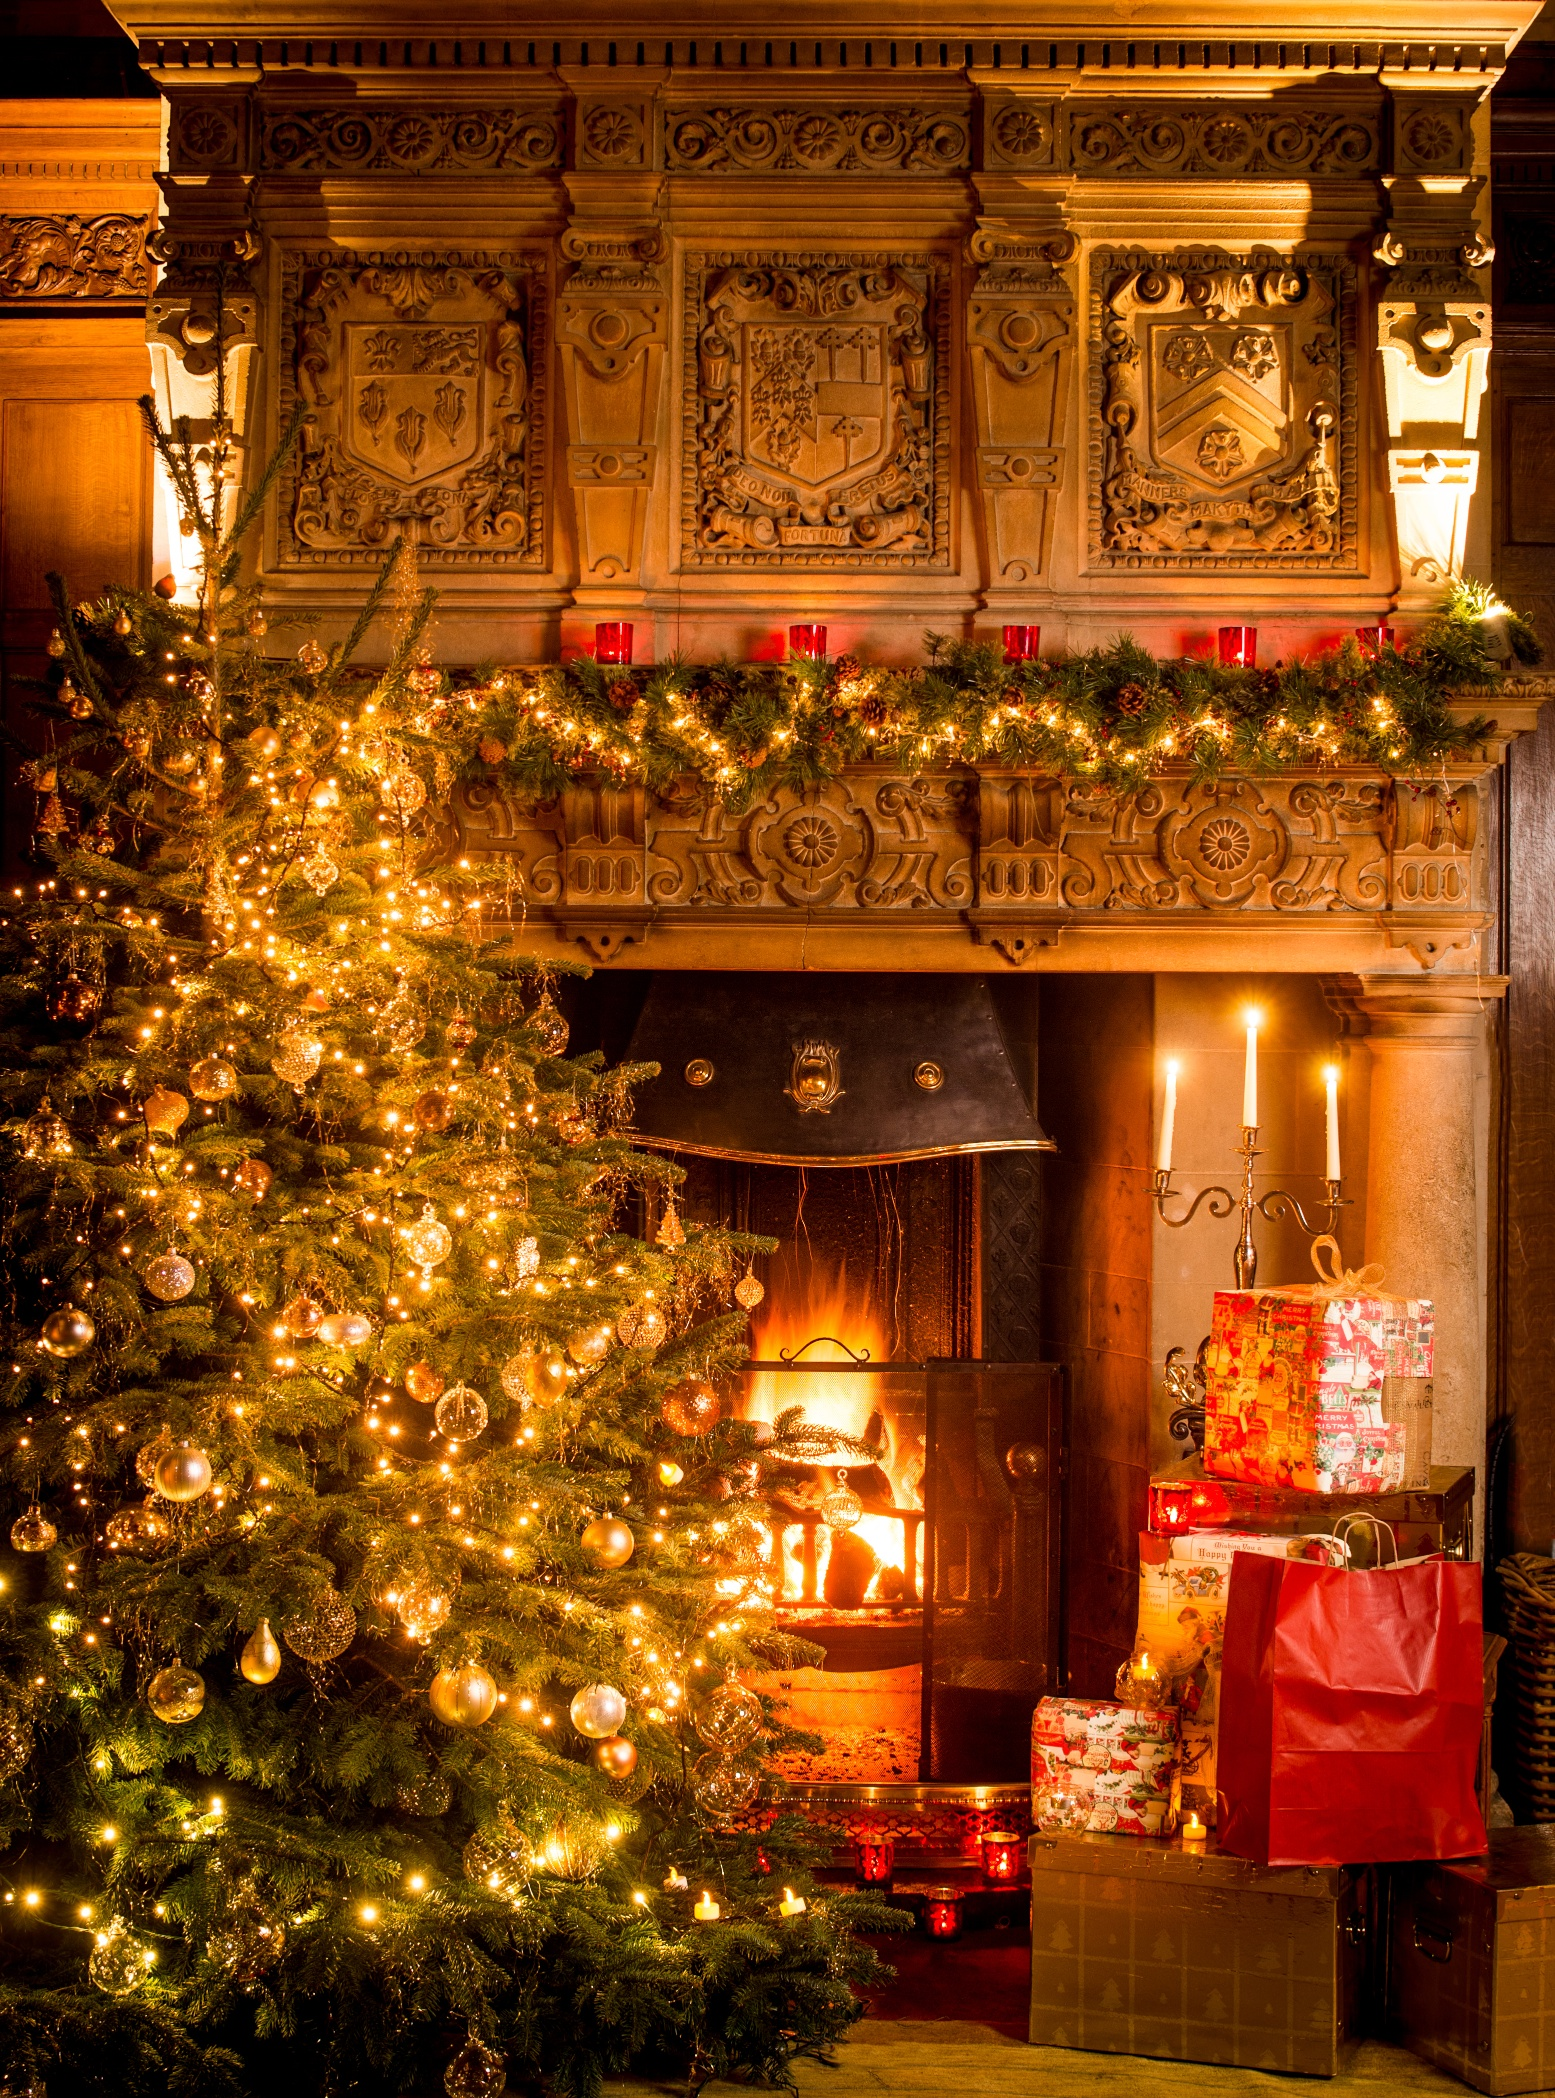 4k christmas fireplaces wallpapers high quality